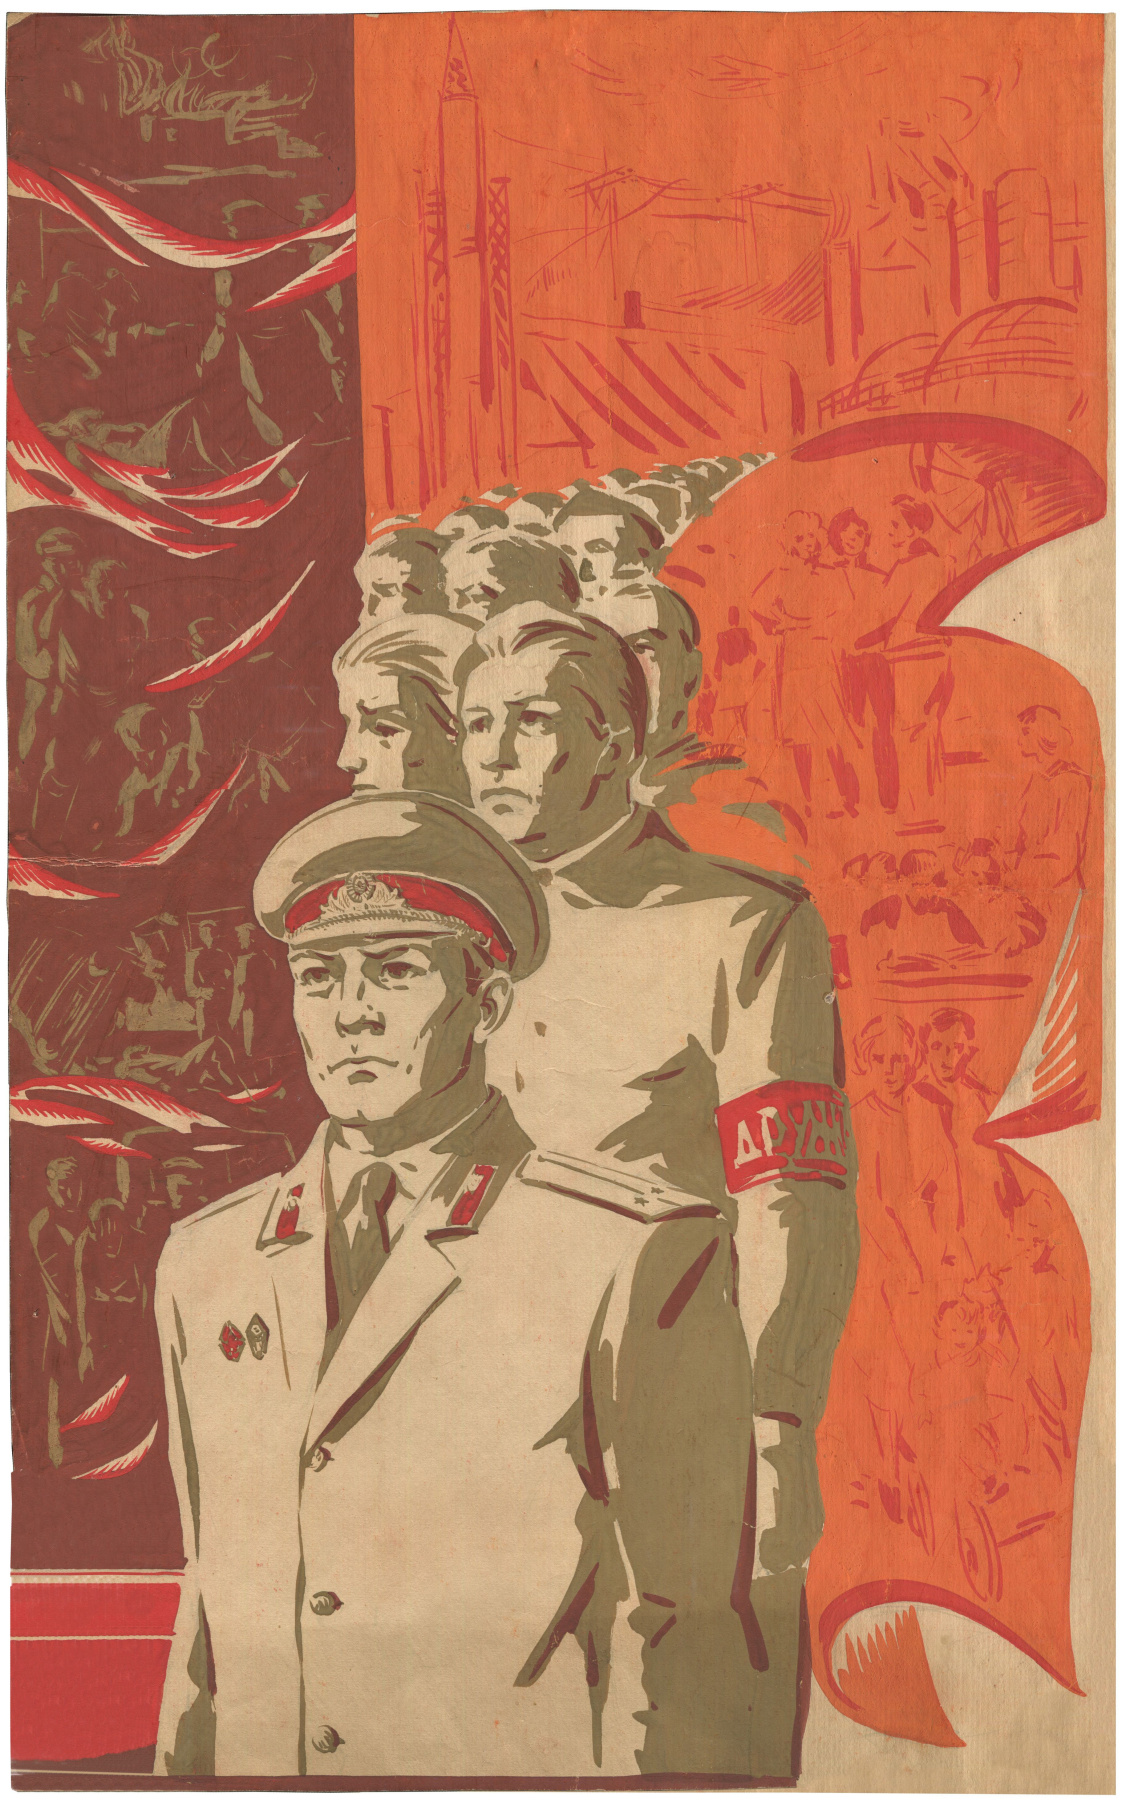 Alexandrovich Rudolf Pavlov. 1918 year. The revolution in Russia, continuity. Poster. Sketch, part 2